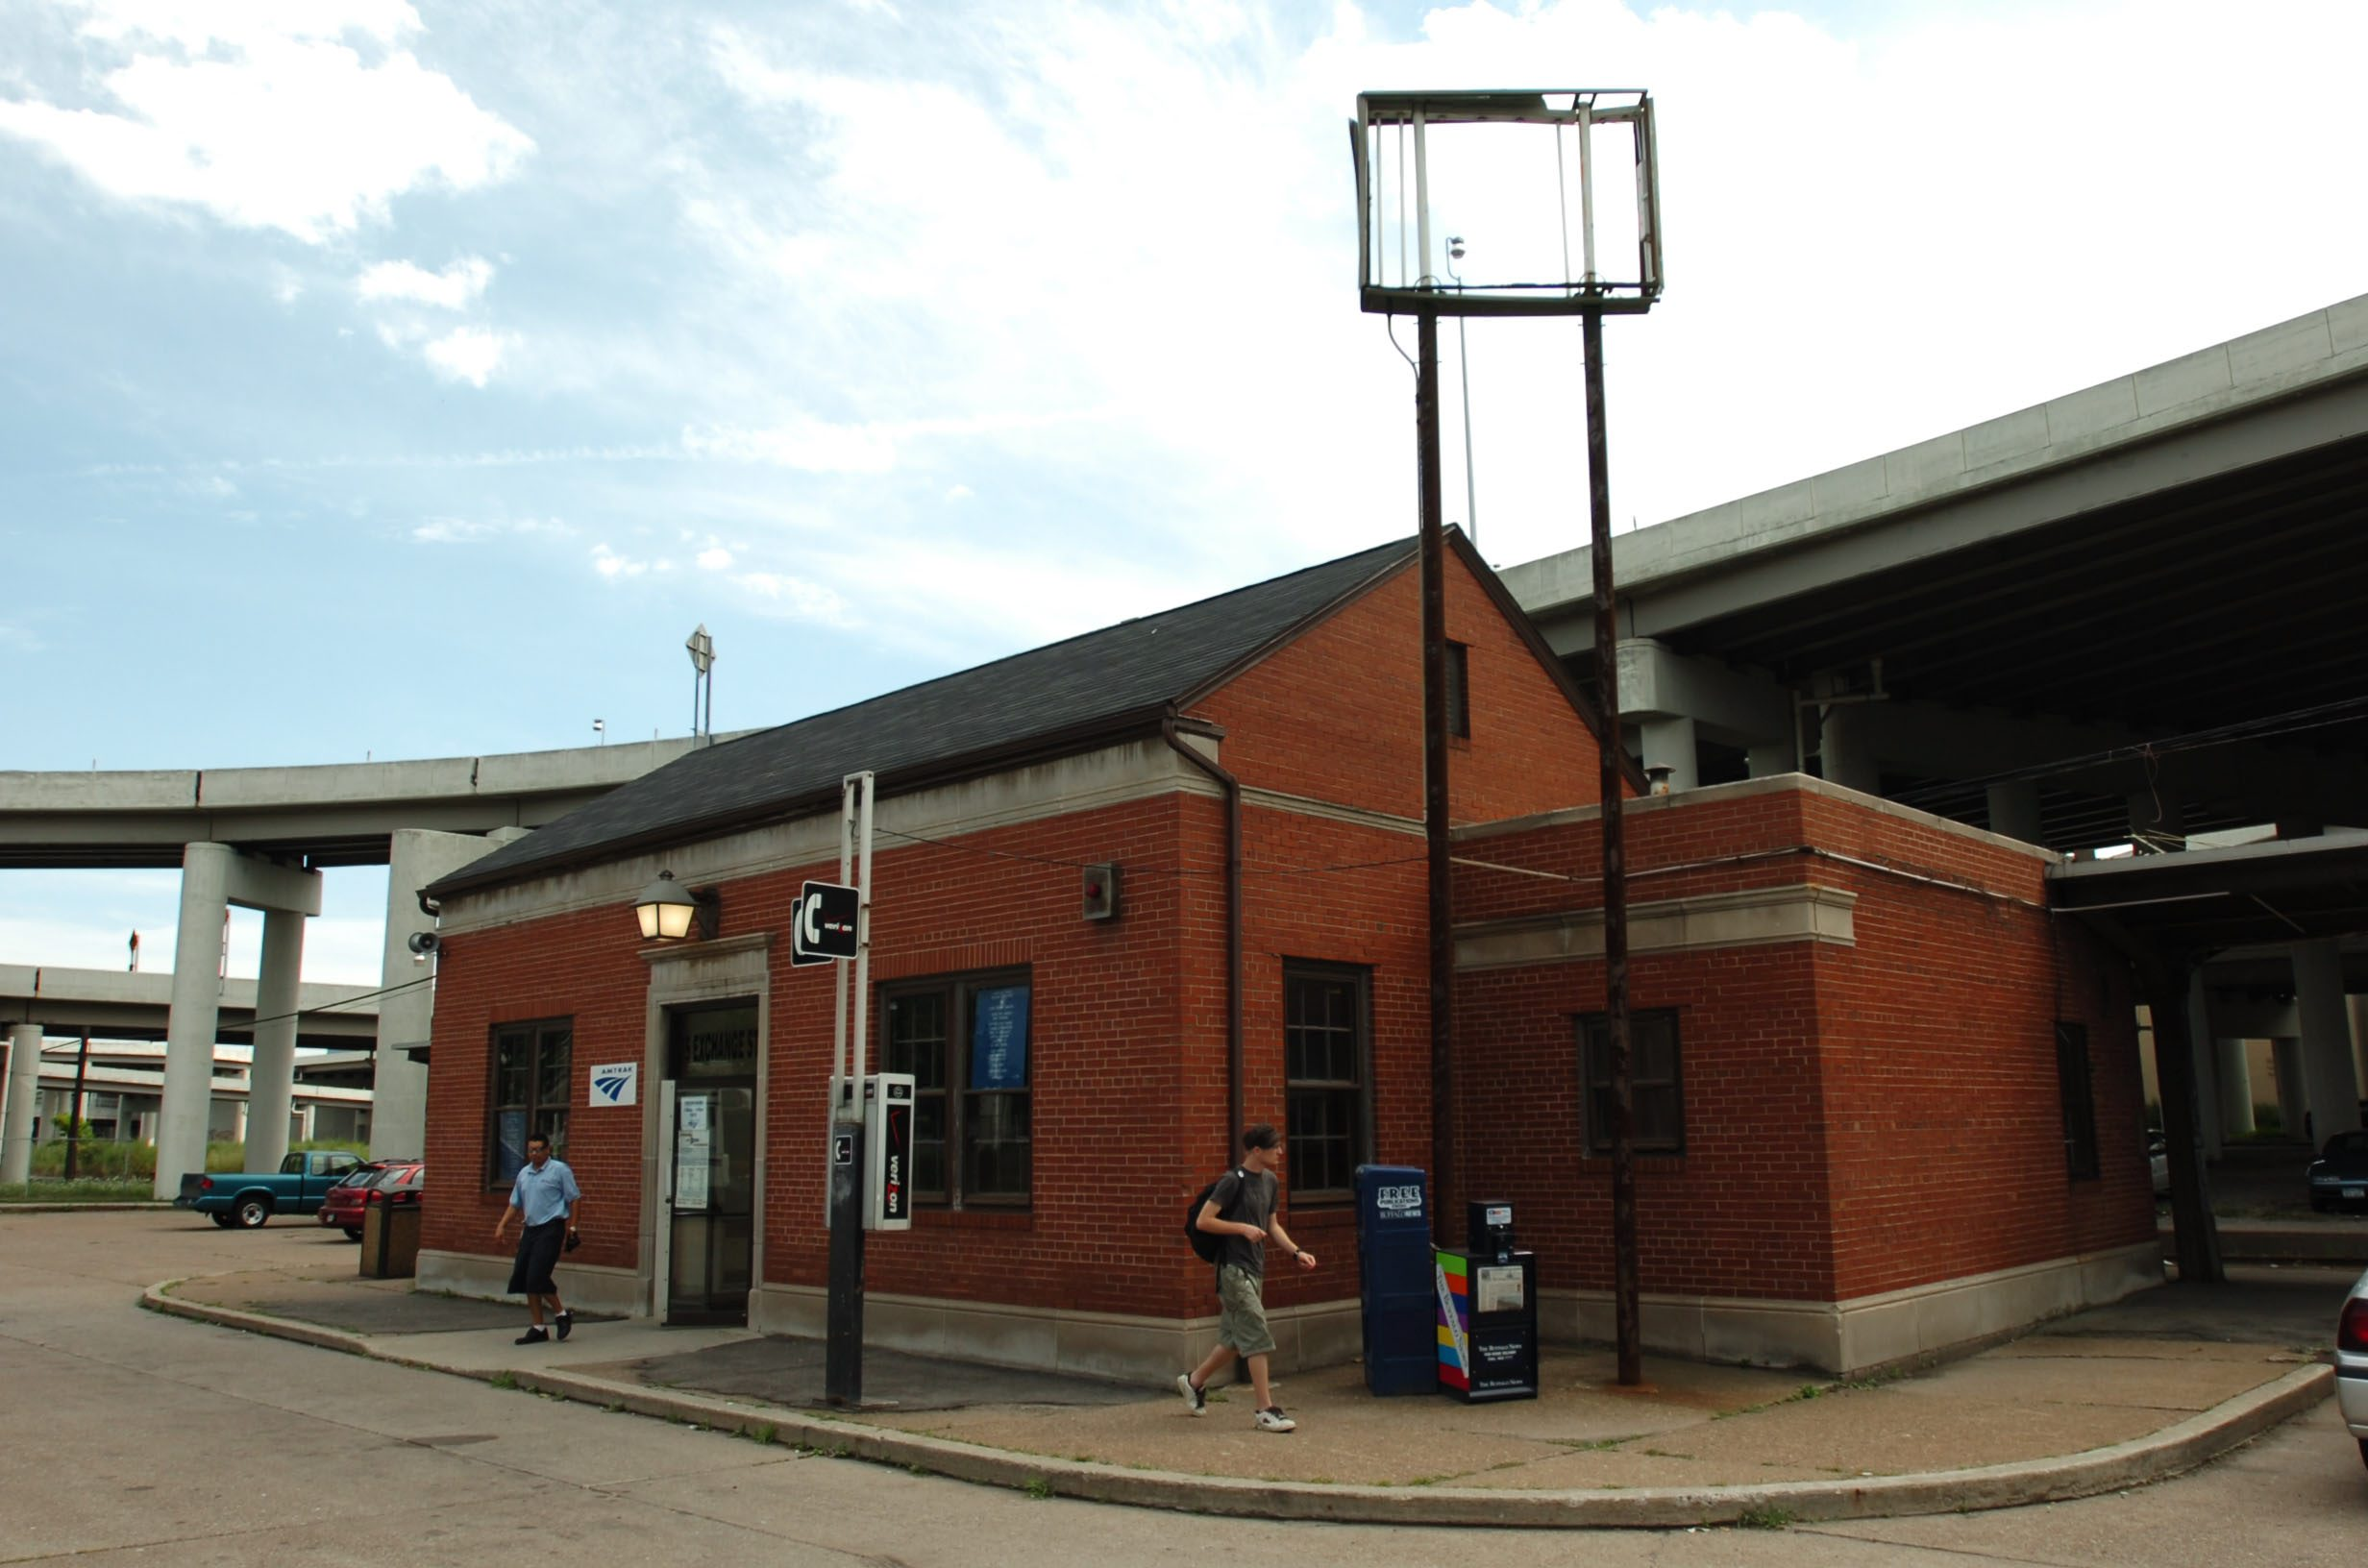 The Amtrak station on Exchange Street in downtown Buffalo. (News file photo)